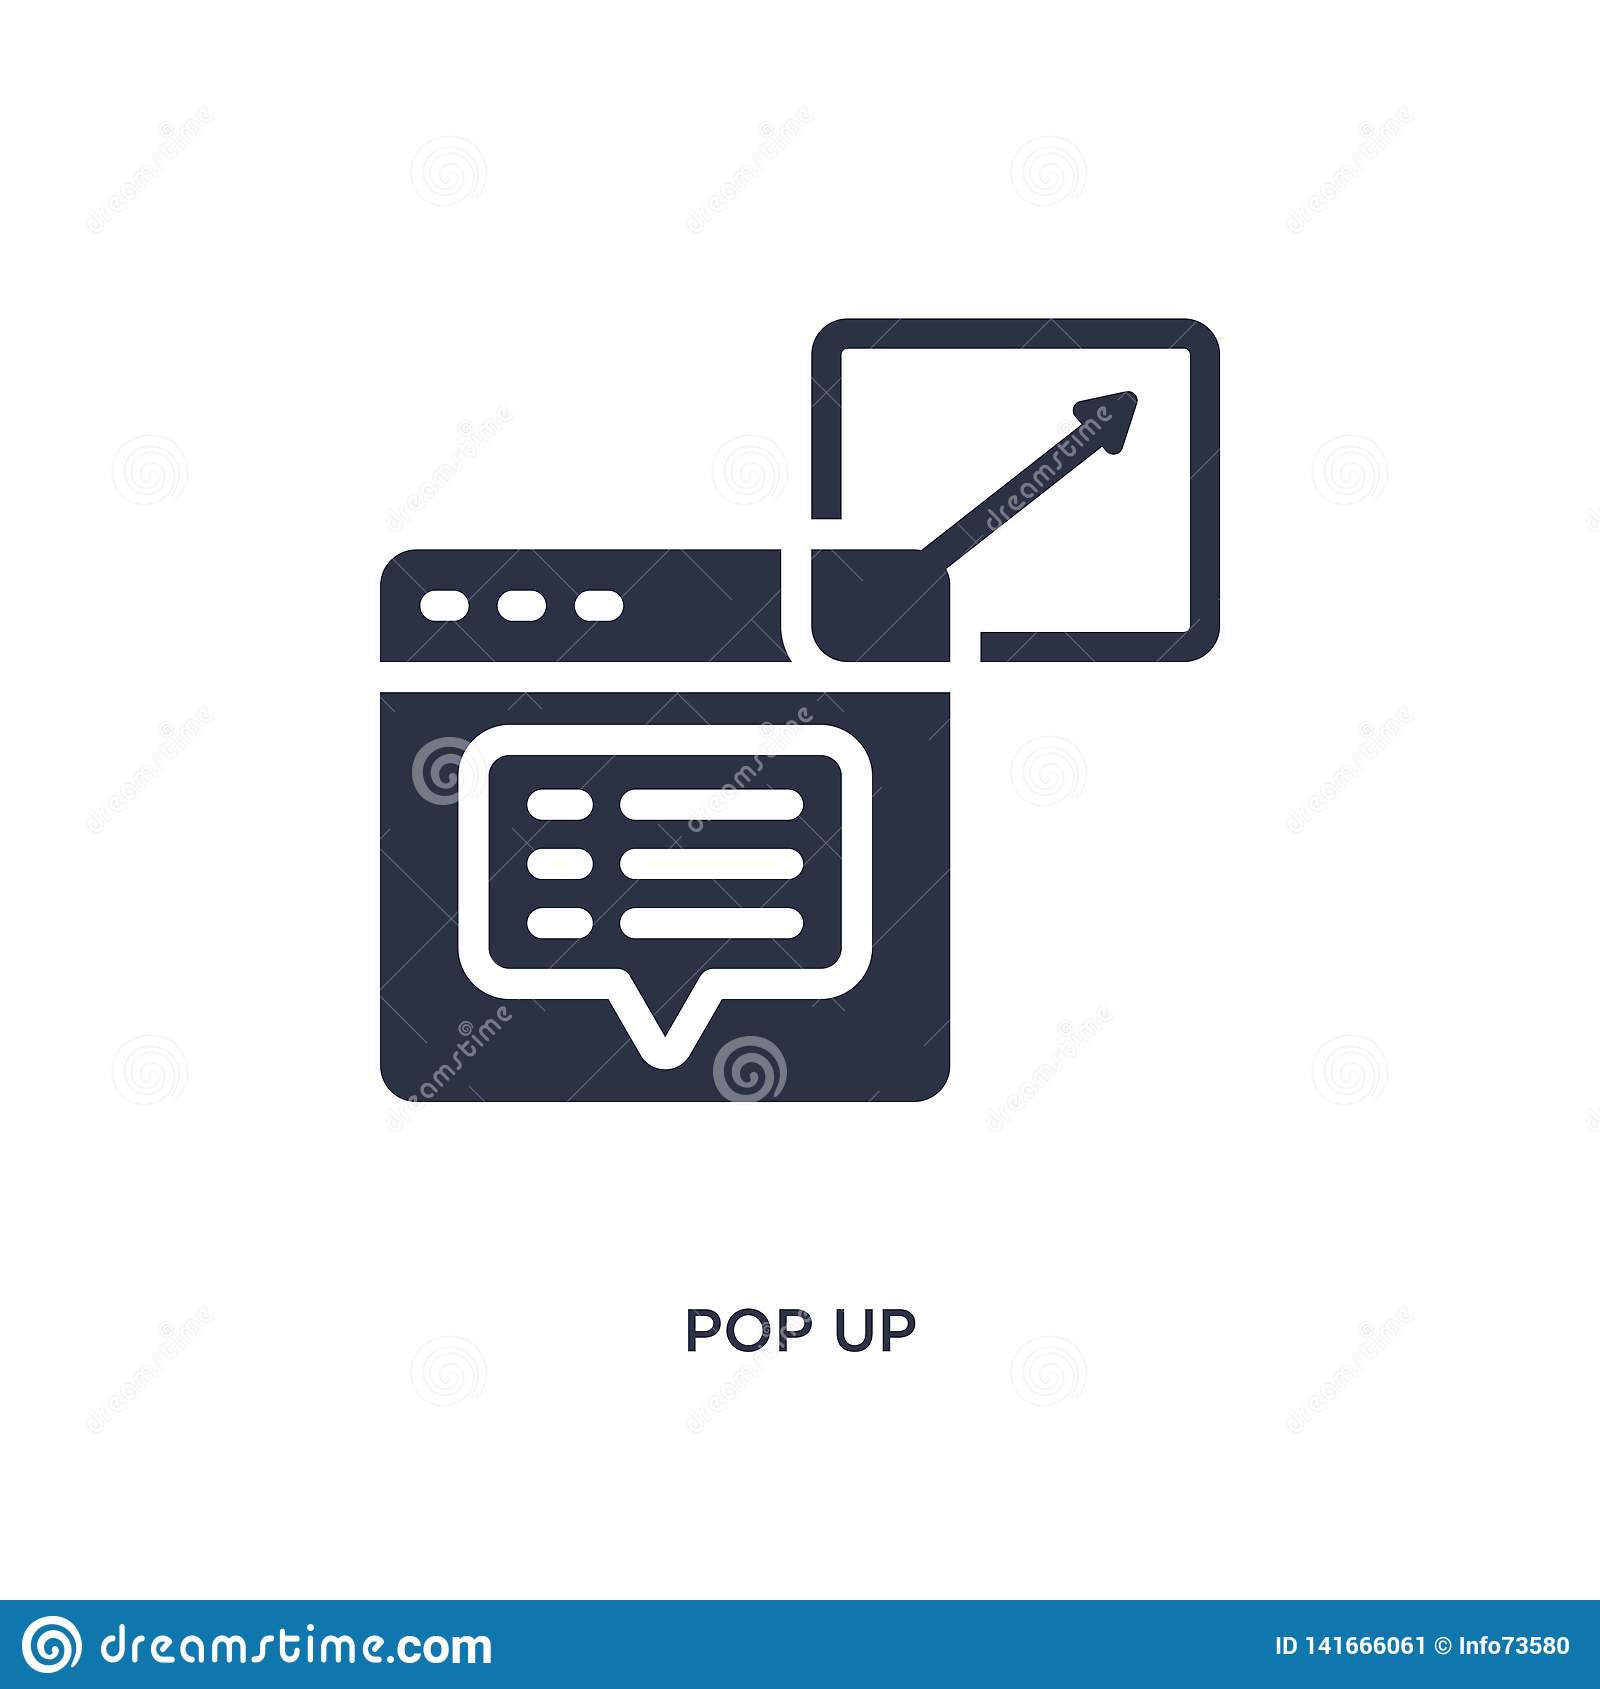 pop up icon on white background. Simple element illustration from marketing concept